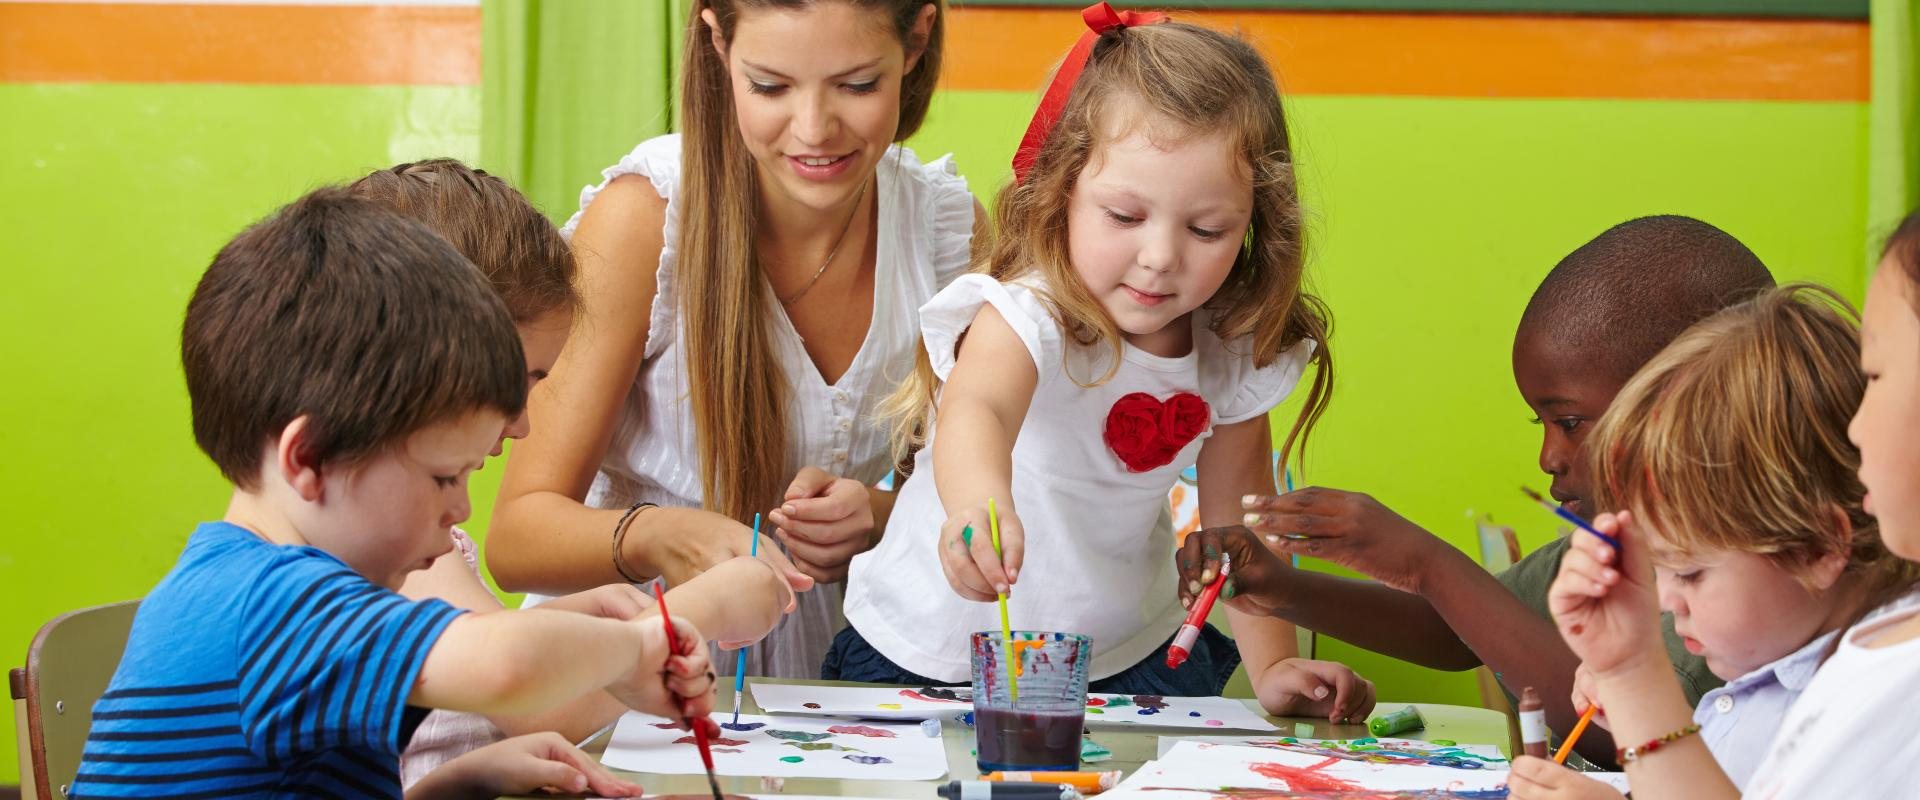 Business and Freehold Child Care Centre for Sale in NSW contact Andrew Urquhart